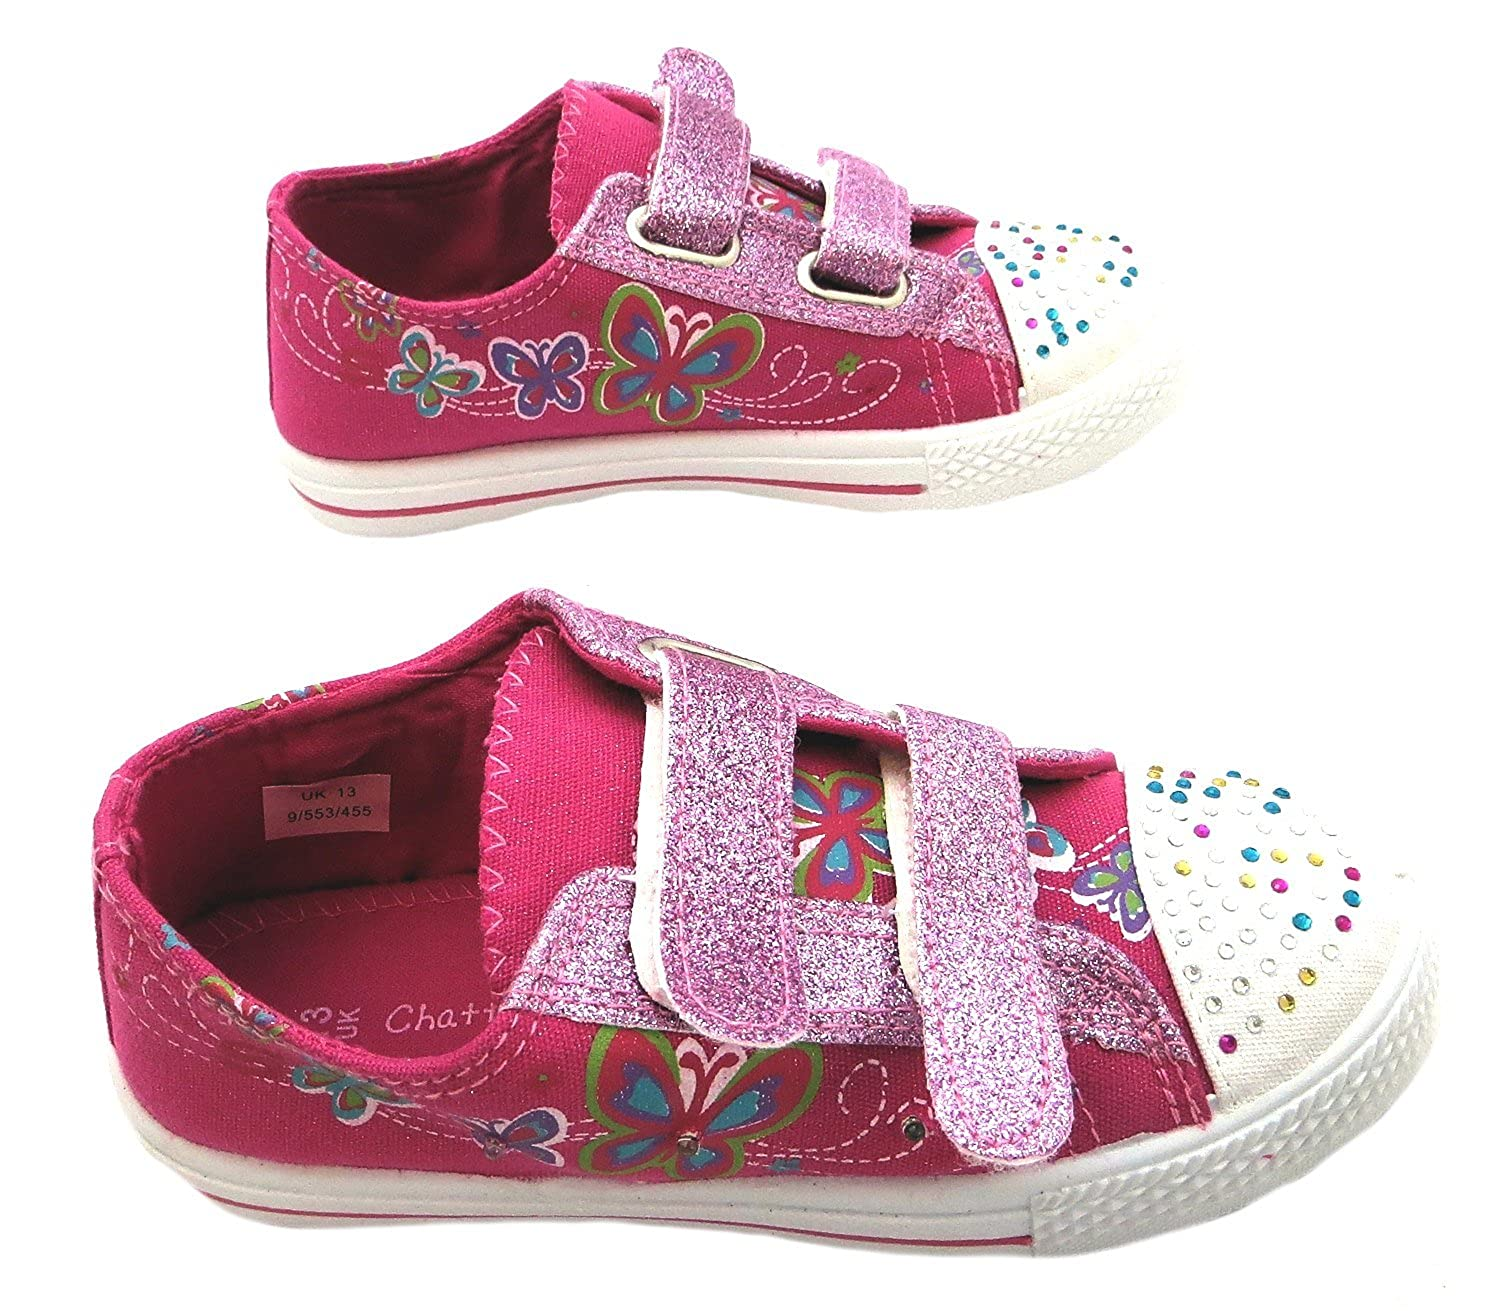 Size 1 Chatterbox Girl's Zelda Canvas Casual Shoes: Amazon.co.uk: Shoes &  Bags